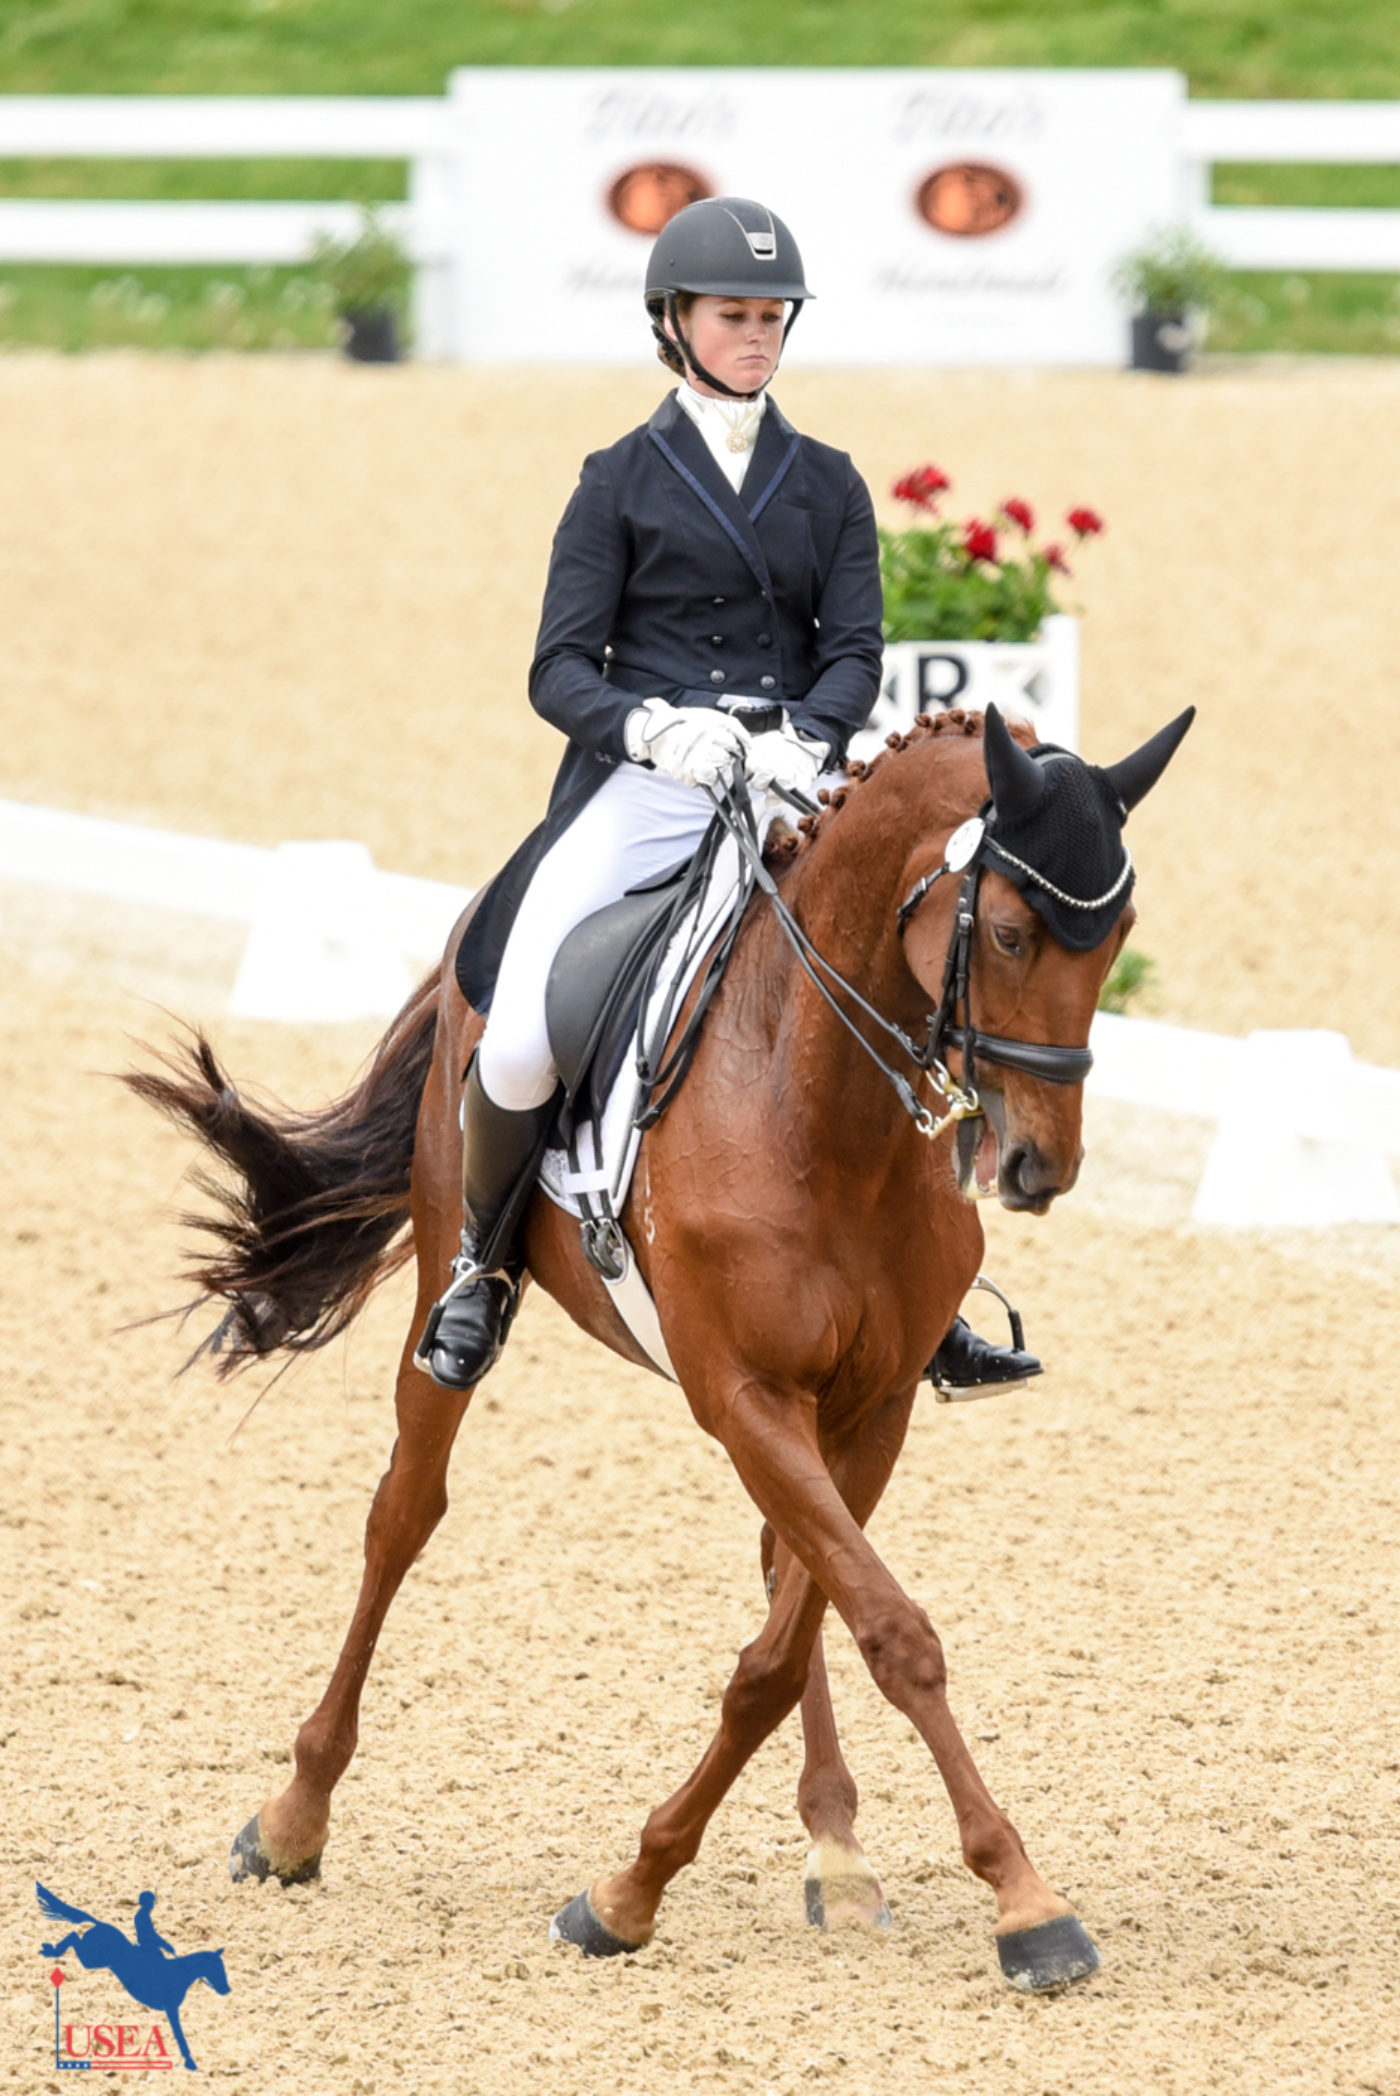 11th - Hazel Shannon and Willingapark Clifford - 39.0